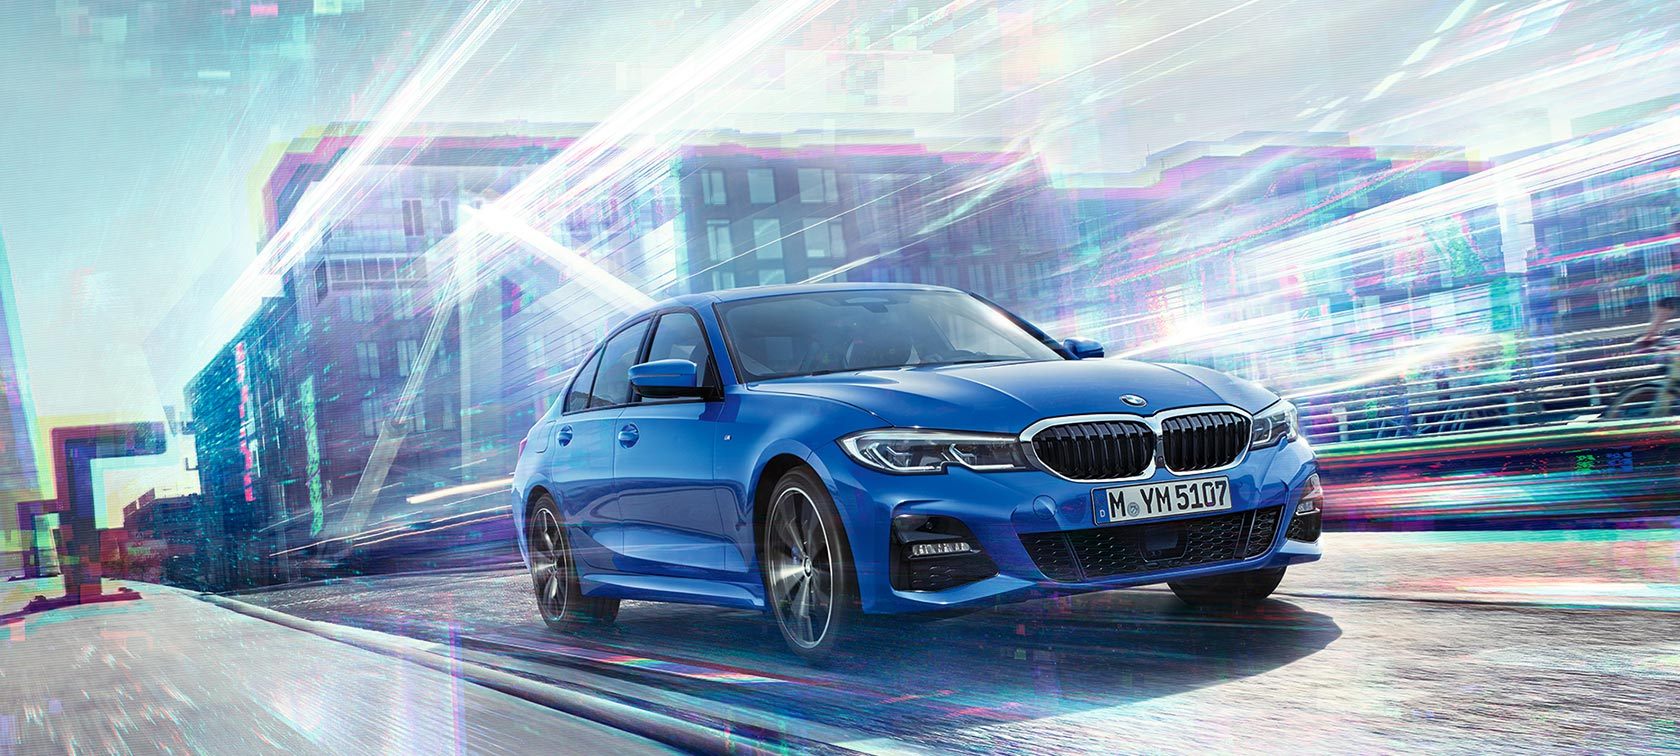 THE ALL-NEW BMW 3 SERIES DEBUT